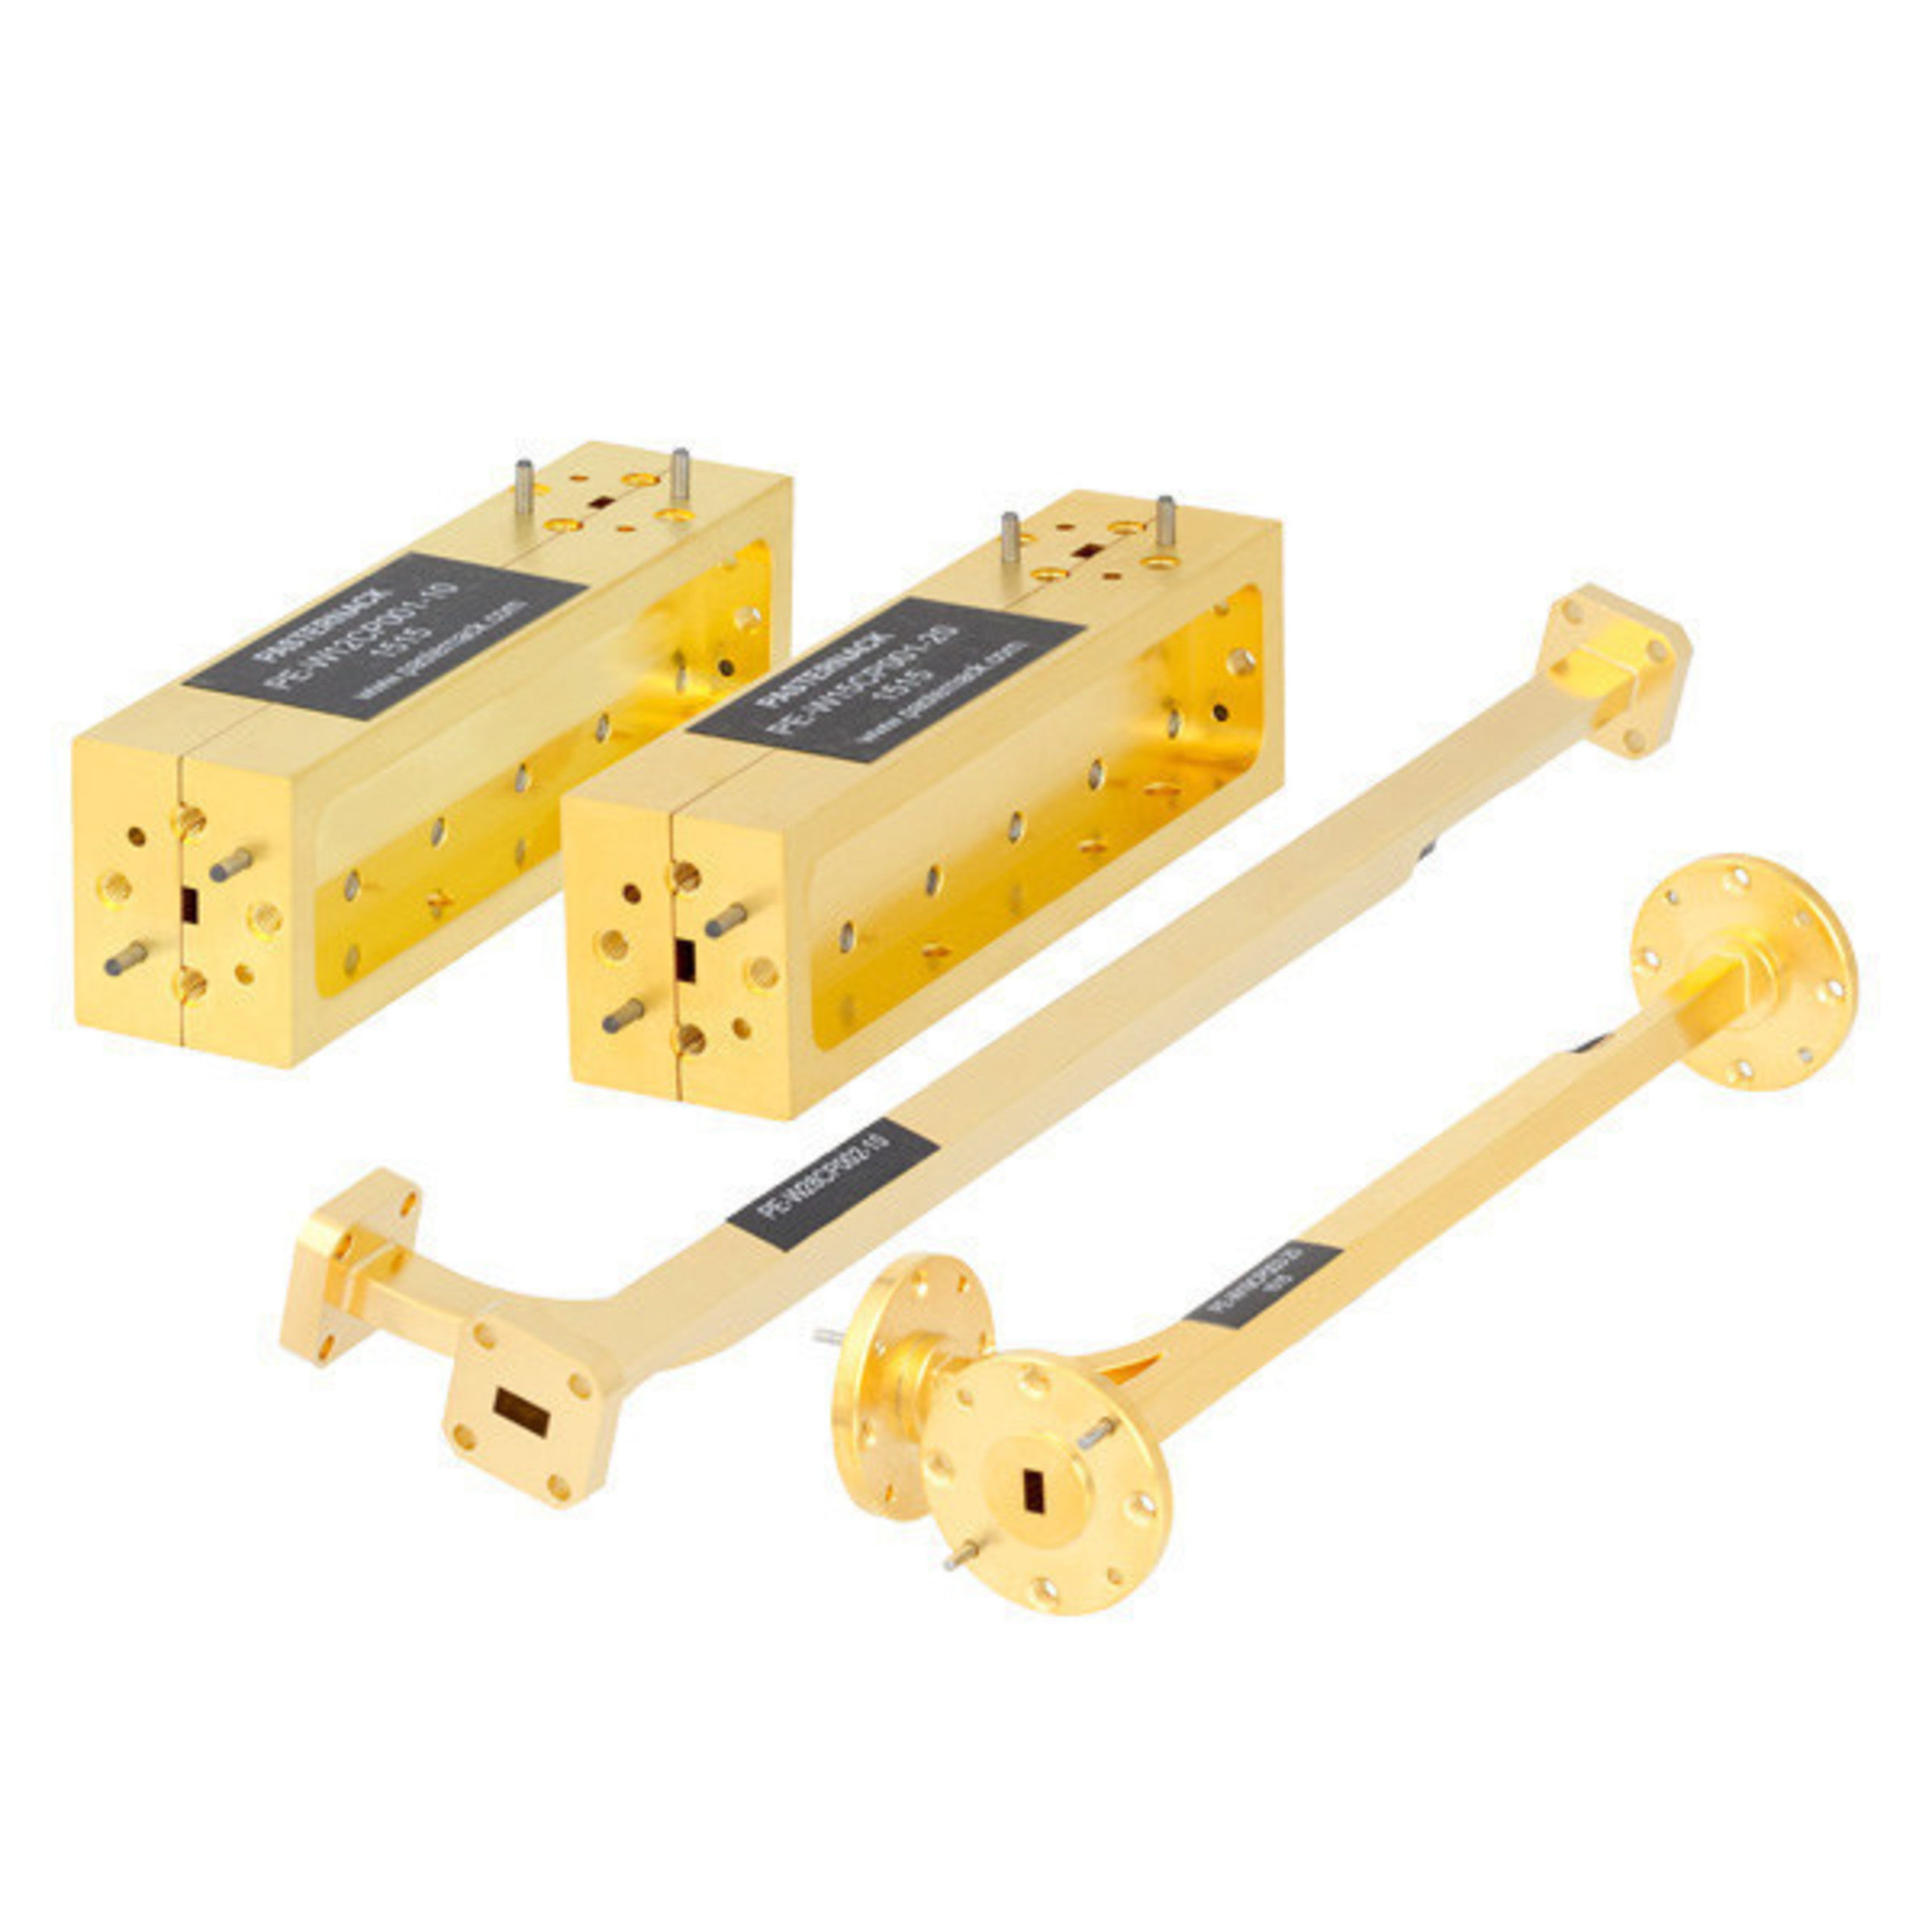 Pasternack Introduces New Portfolio of Millimeter Wave Directional Waveguide Couplers